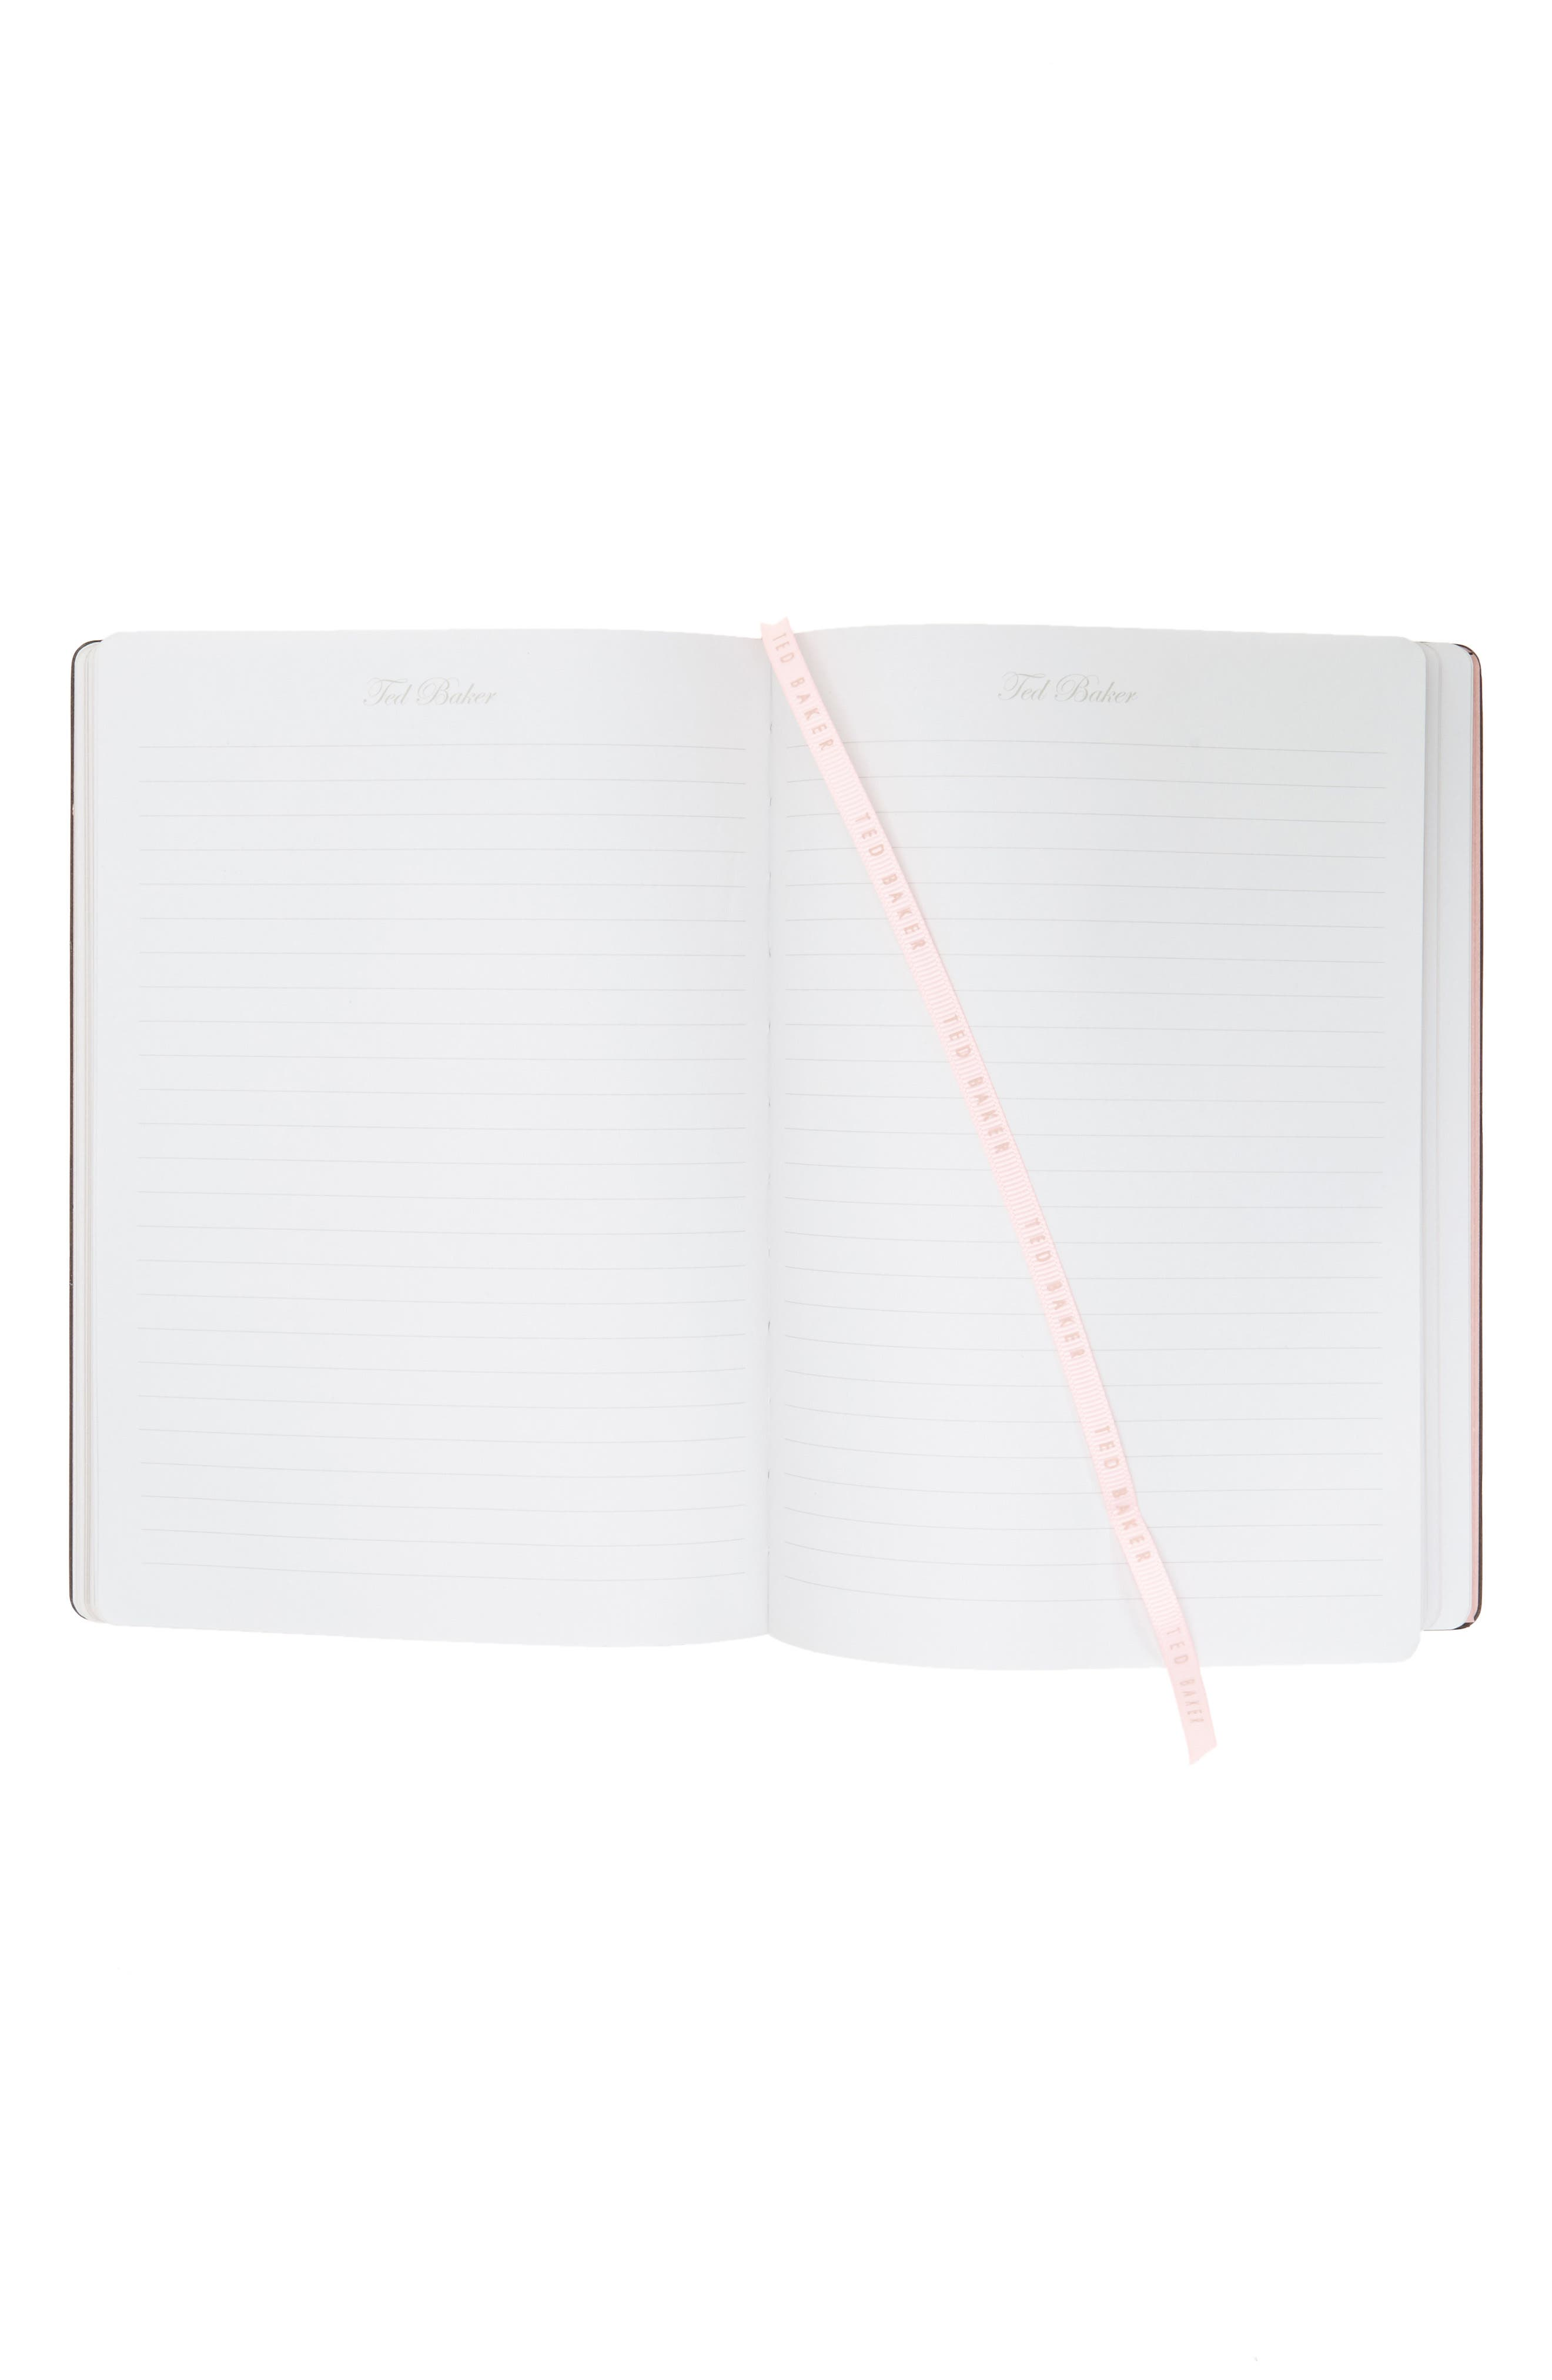 Wild and Wolf x Ted Baker London In Ore of You Gemstone Notebook with Pencil,                             Alternate thumbnail 3, color,                             Rose Quartz